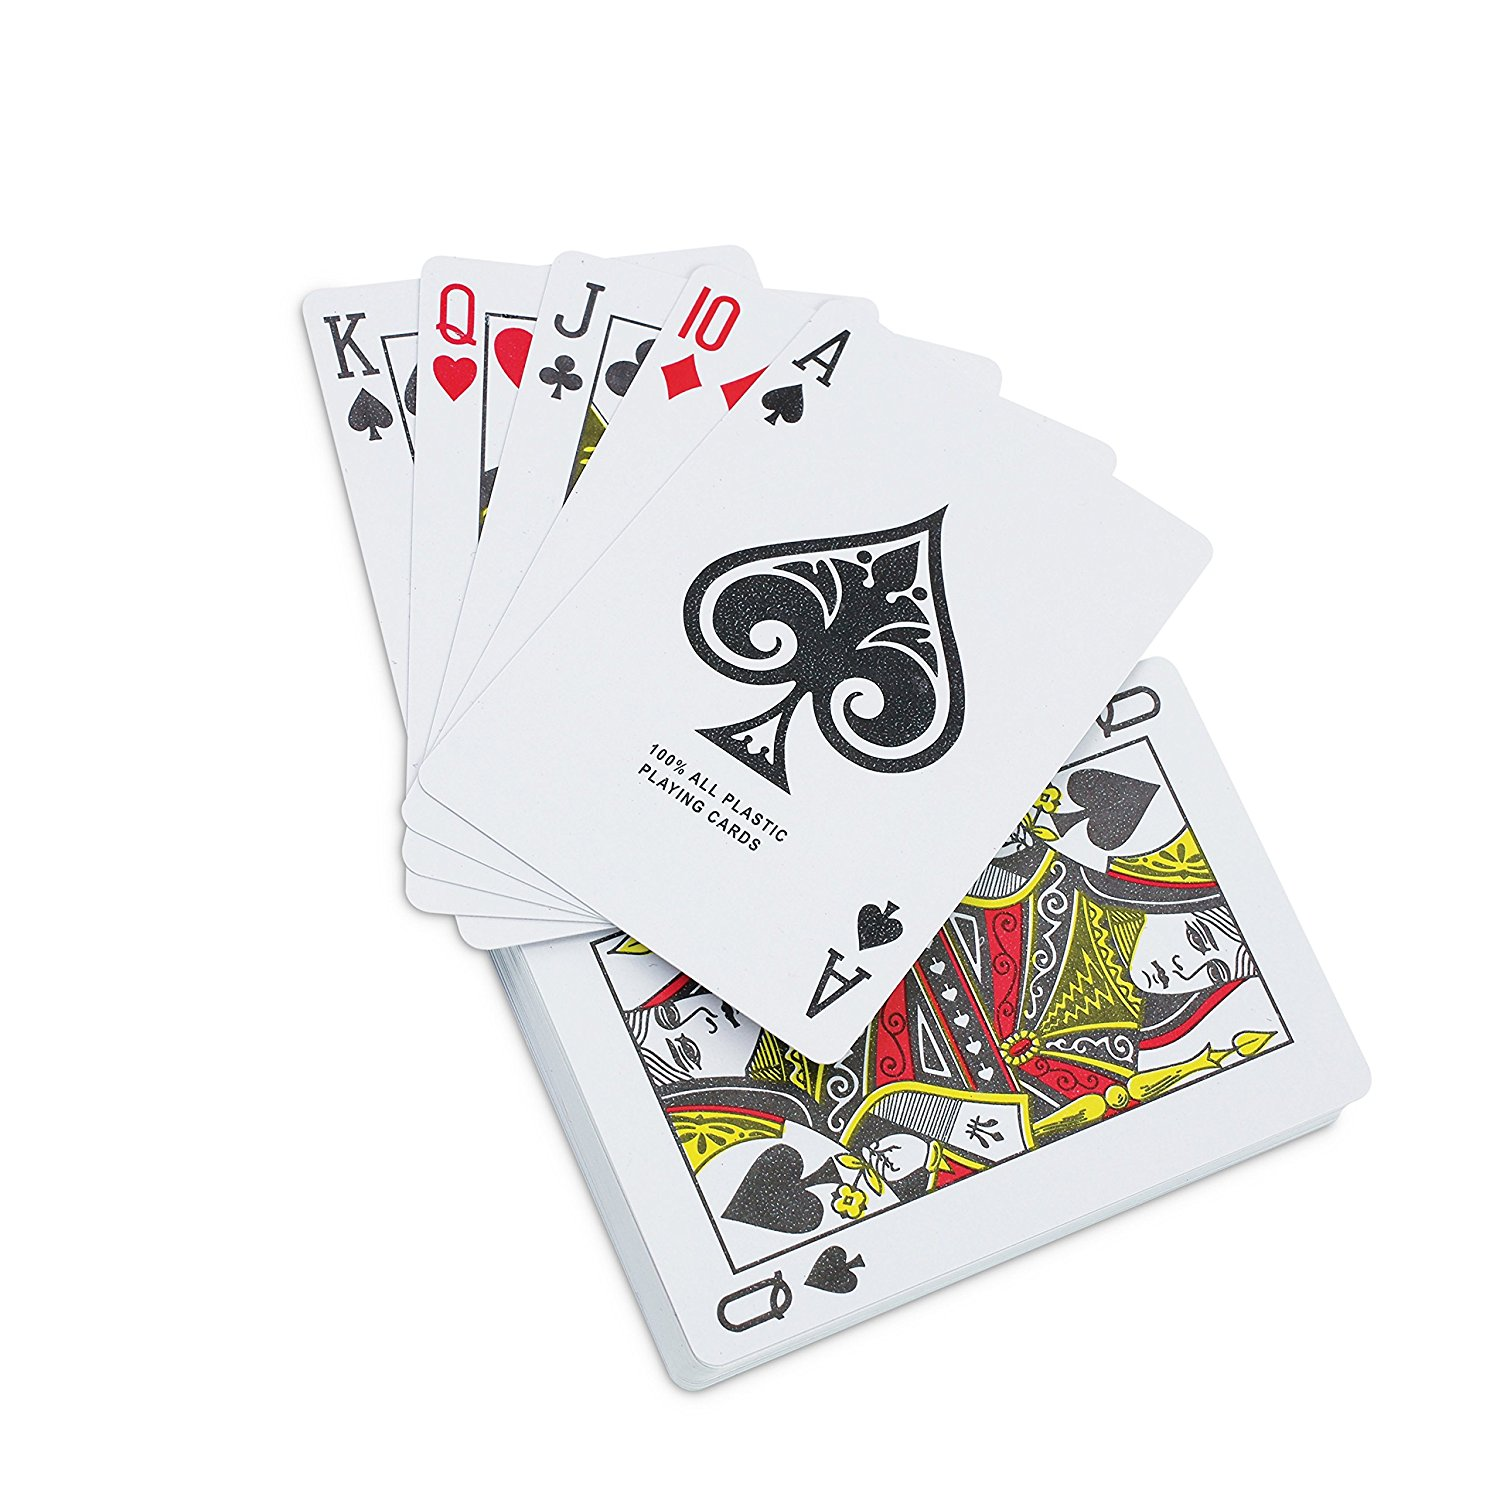 Waterproof Playing Cards in Plastic Case - KOVOT